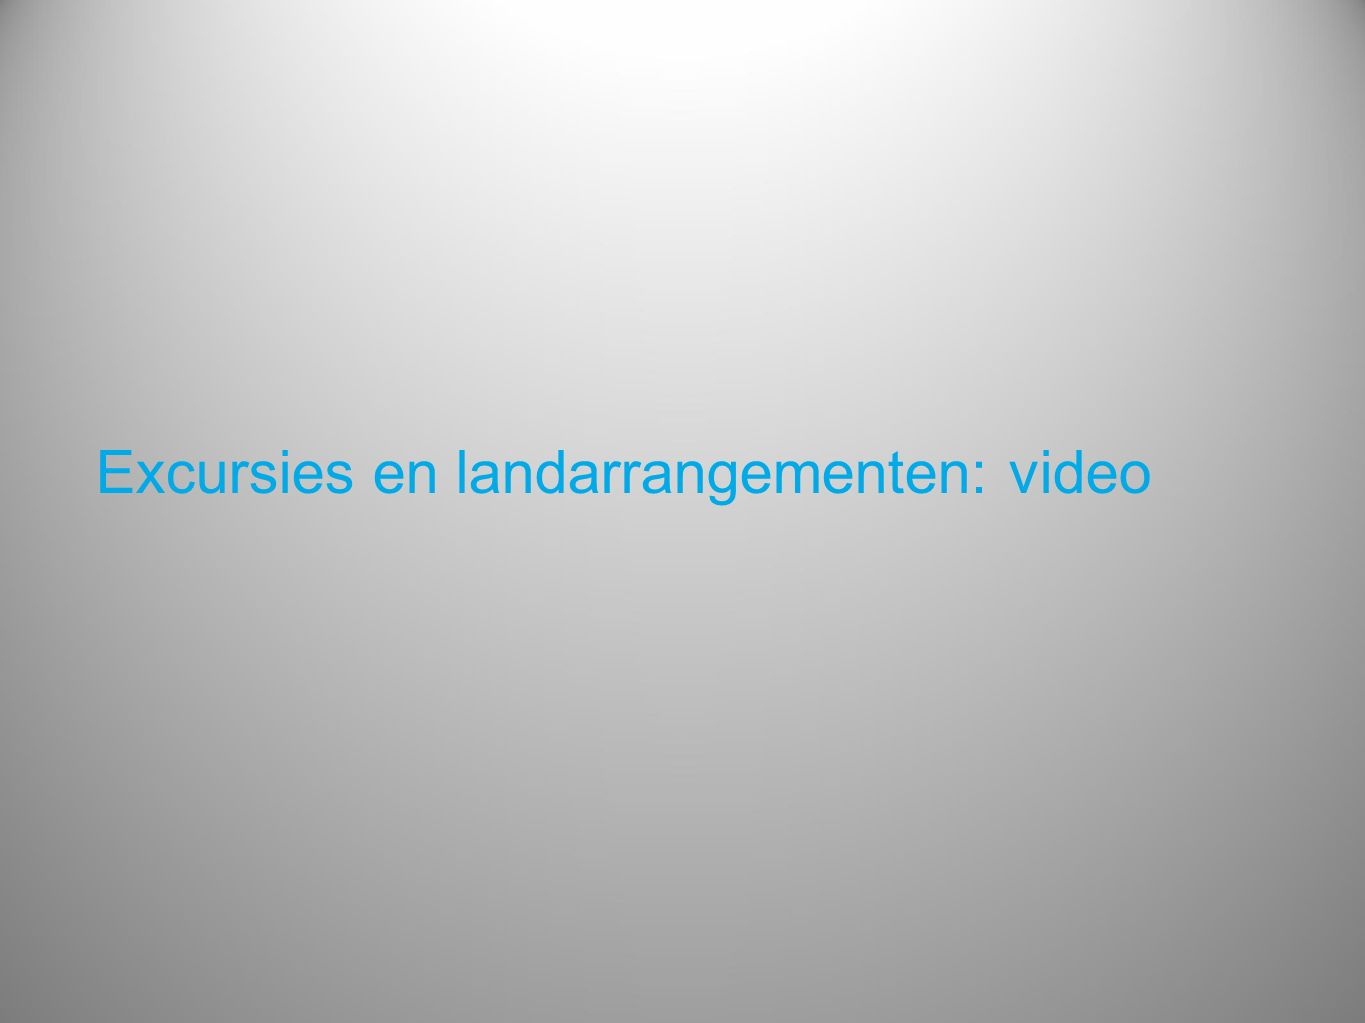 Excursies en landarrangementen: video